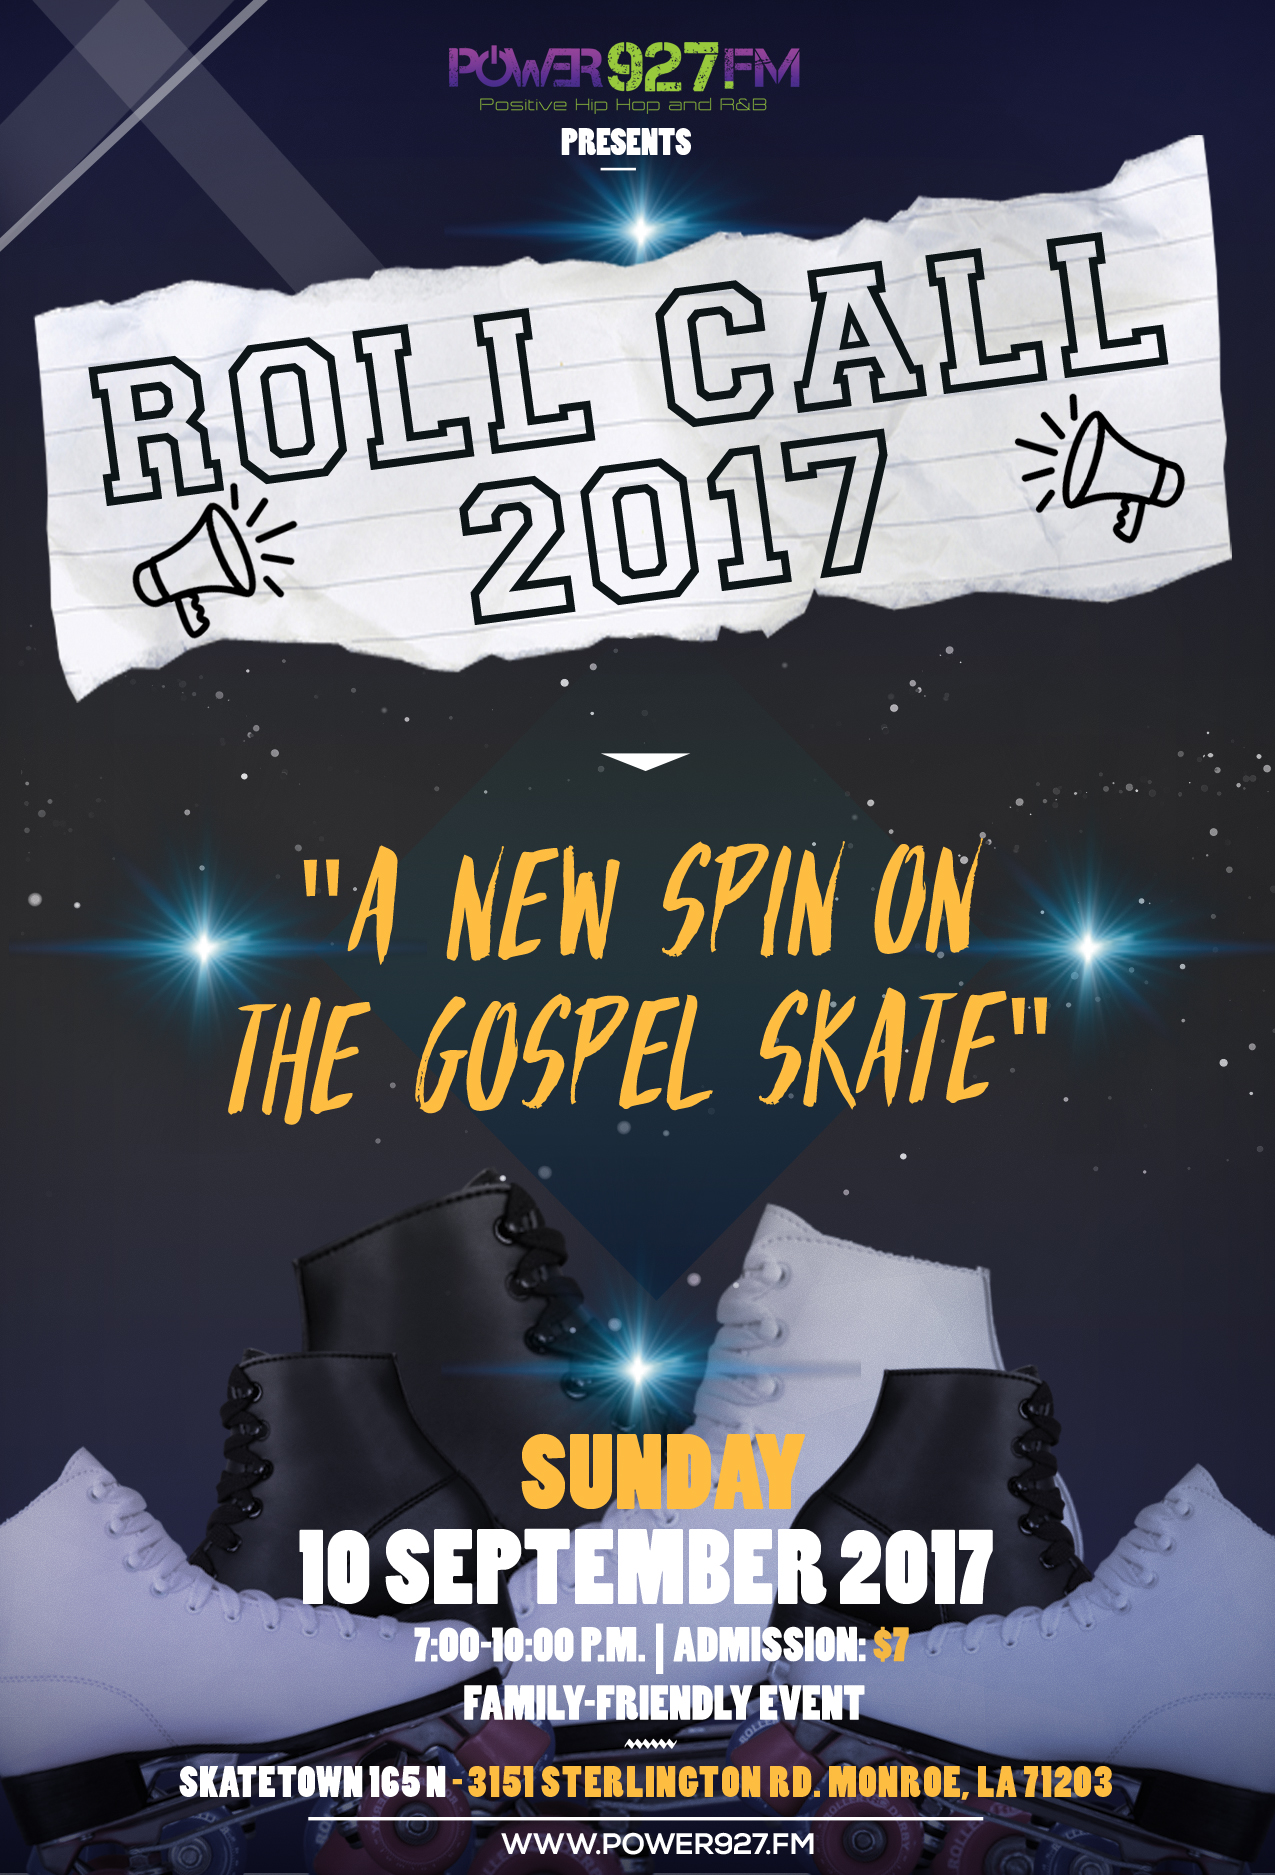 Roll Call 2017: A New Spin on the Gospel Skate